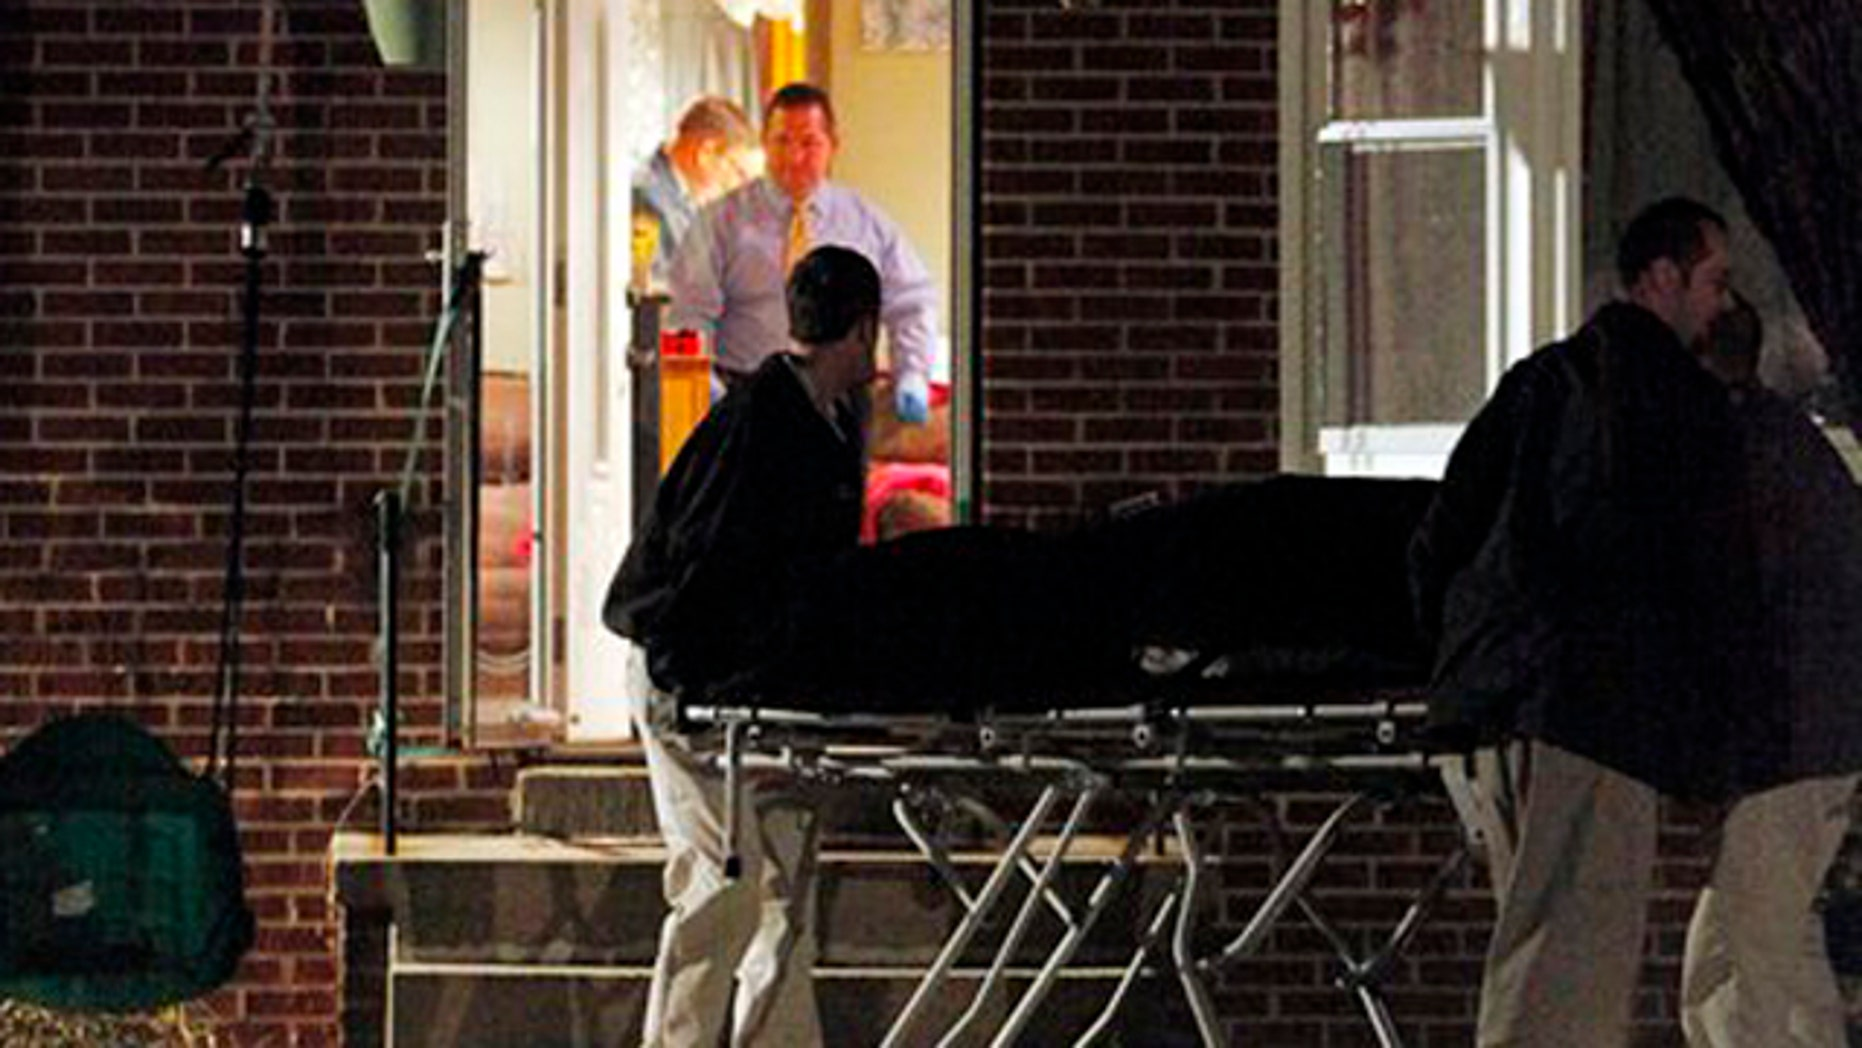 Jan 28, 2012: Multiple bodies are removed from a home in Mechanicsville near Richmond, Virginia.